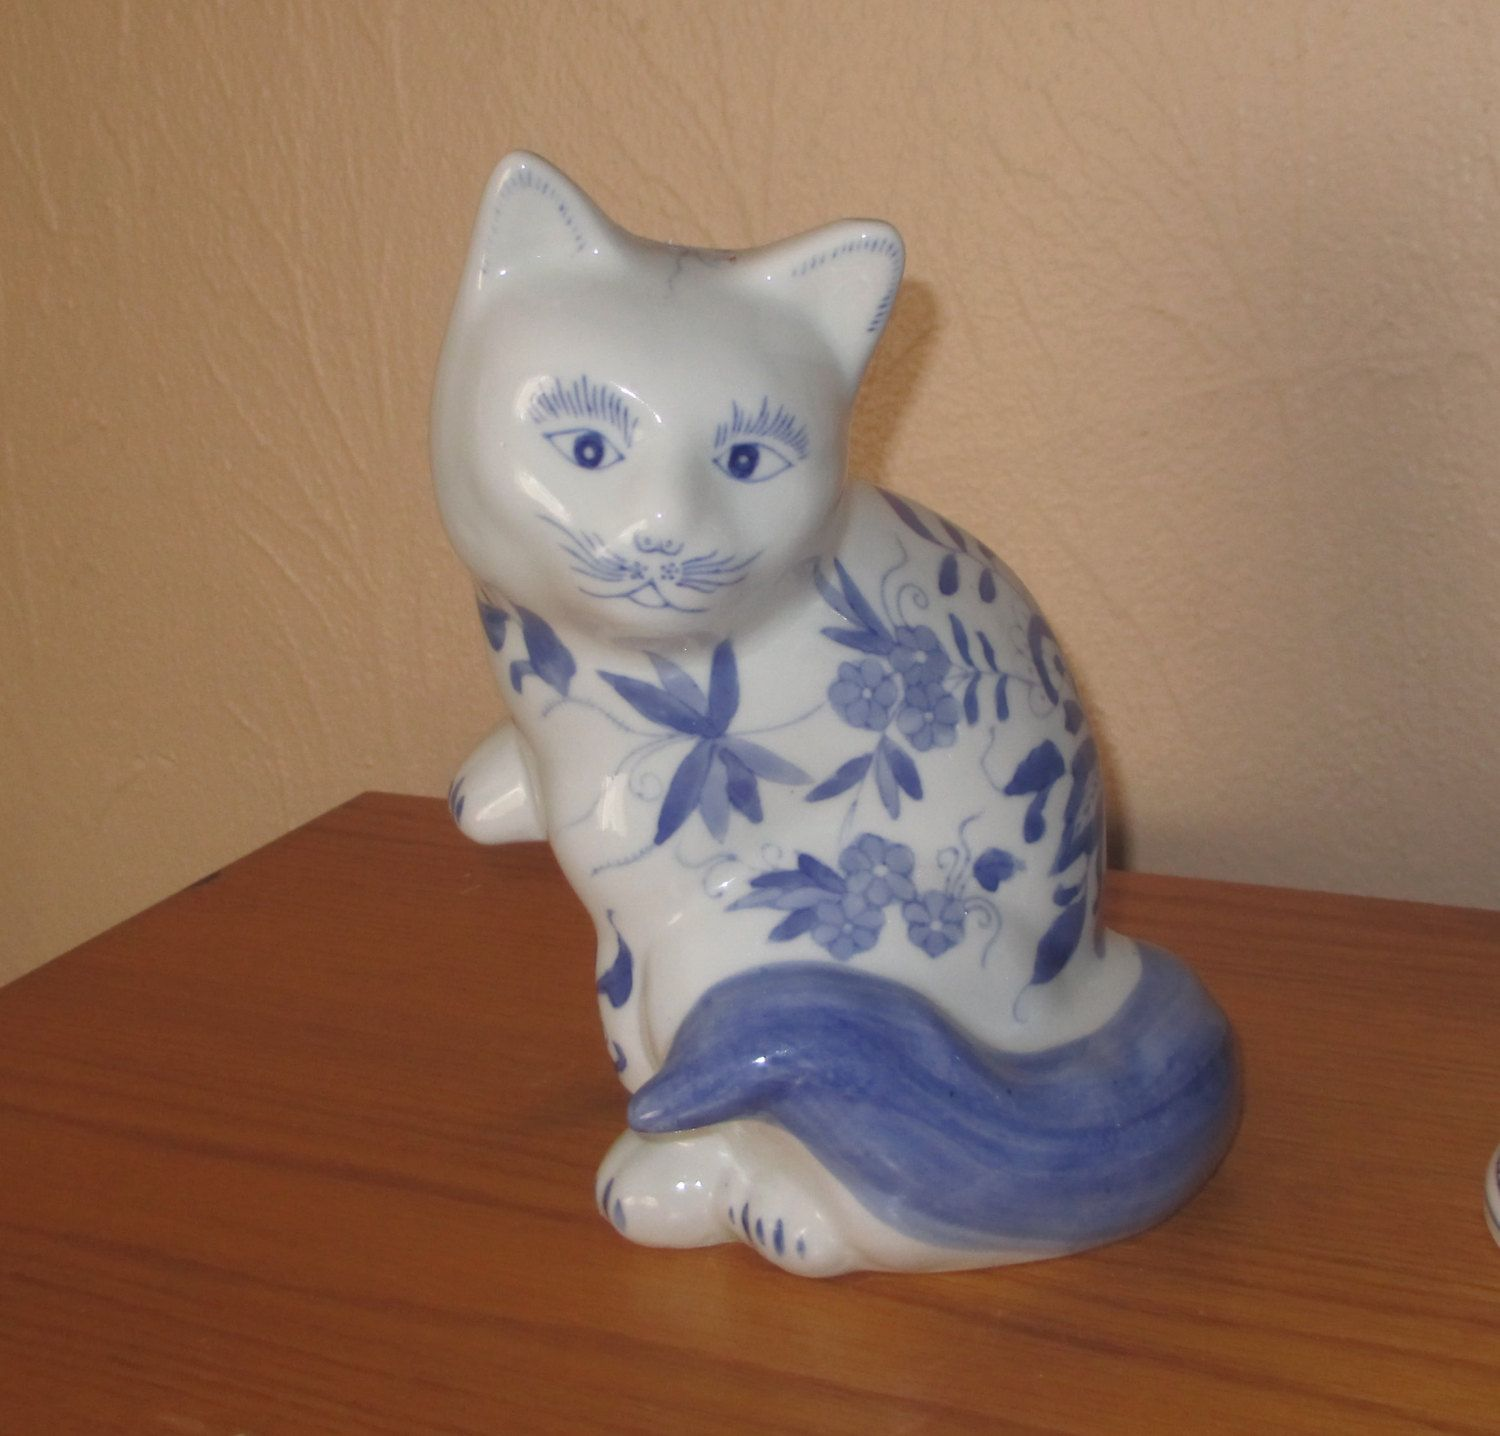 Blue and White Cat Figurine, fabrique en chine, Made in